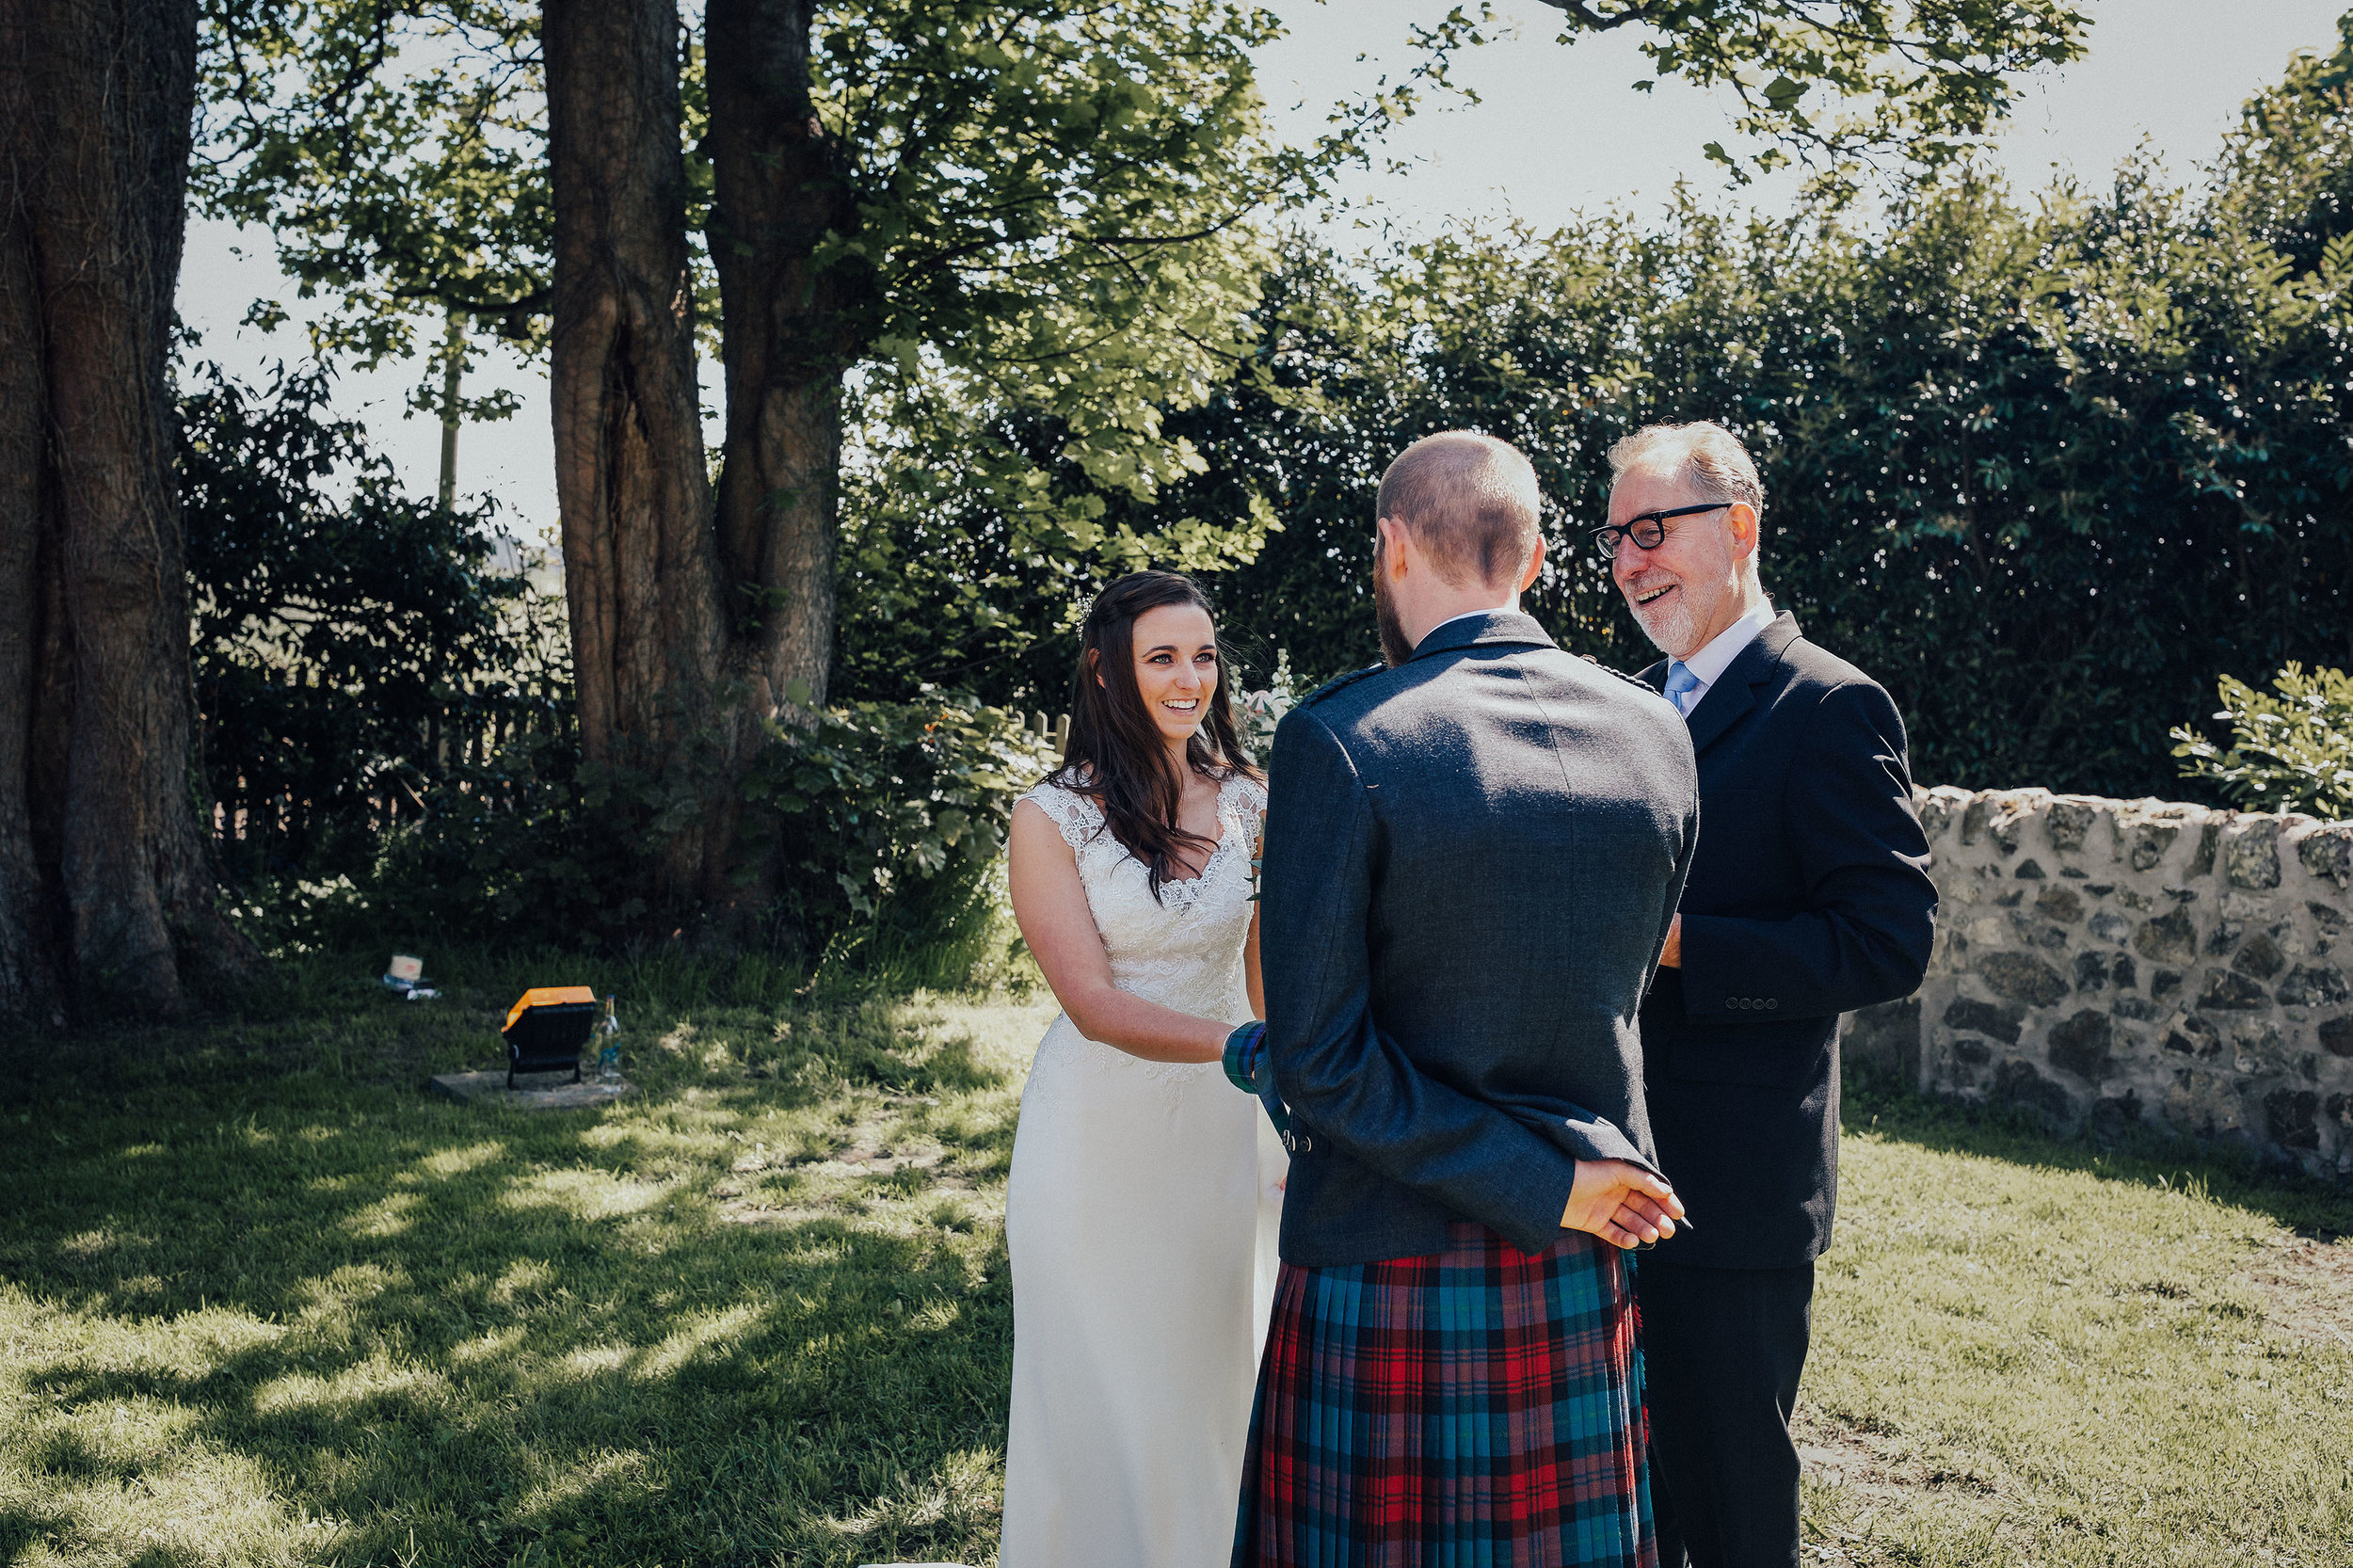 THE_RHYND_WEDDING_PHOTOGRAPHER_PJ_PHILLIPS_PHOTOGRAPHY_59.jpg